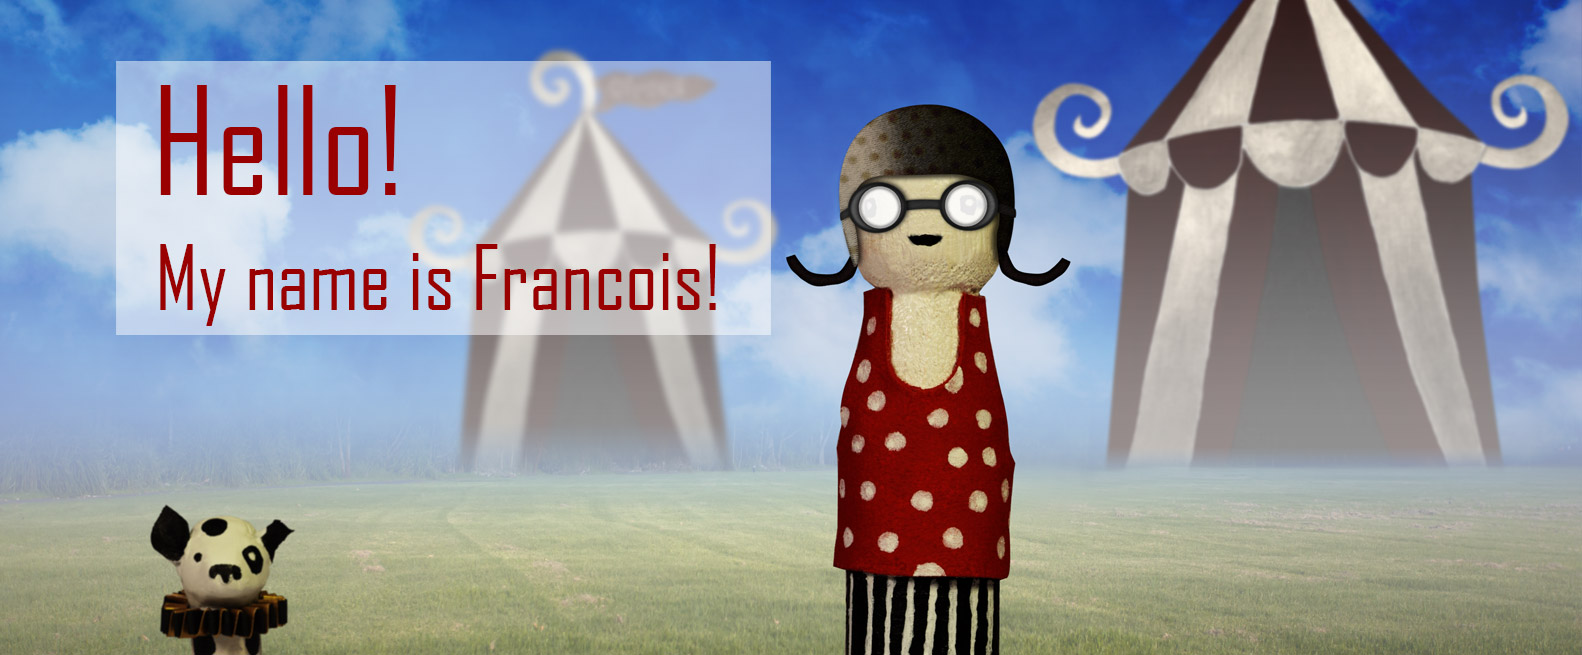 Francois the Fearless